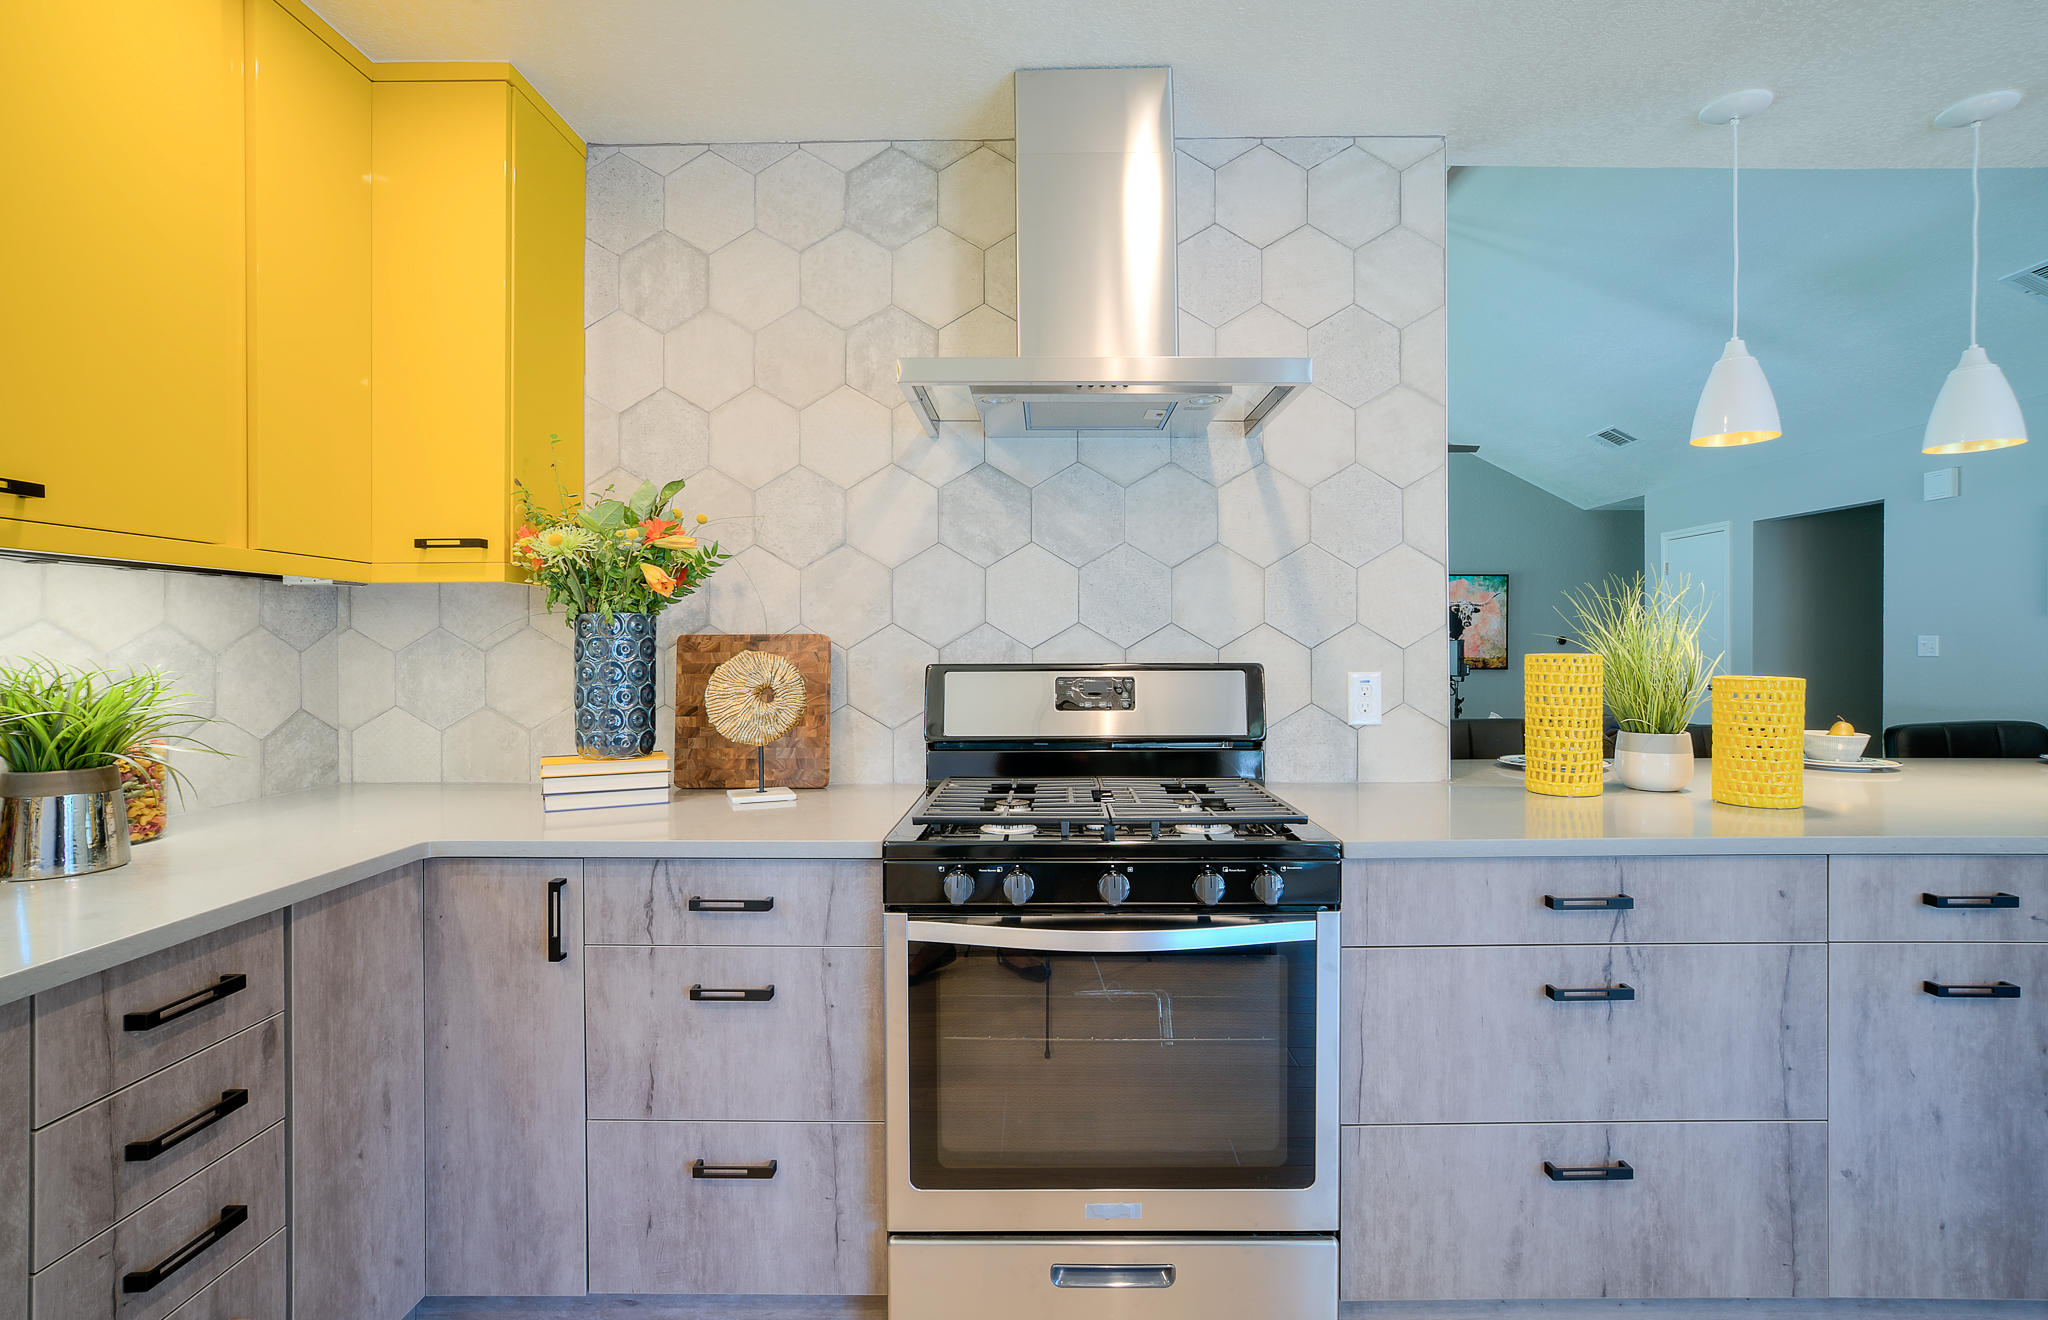 Colorful kitchen interior design for HGTV House Hunters Renovation in Austin, TX